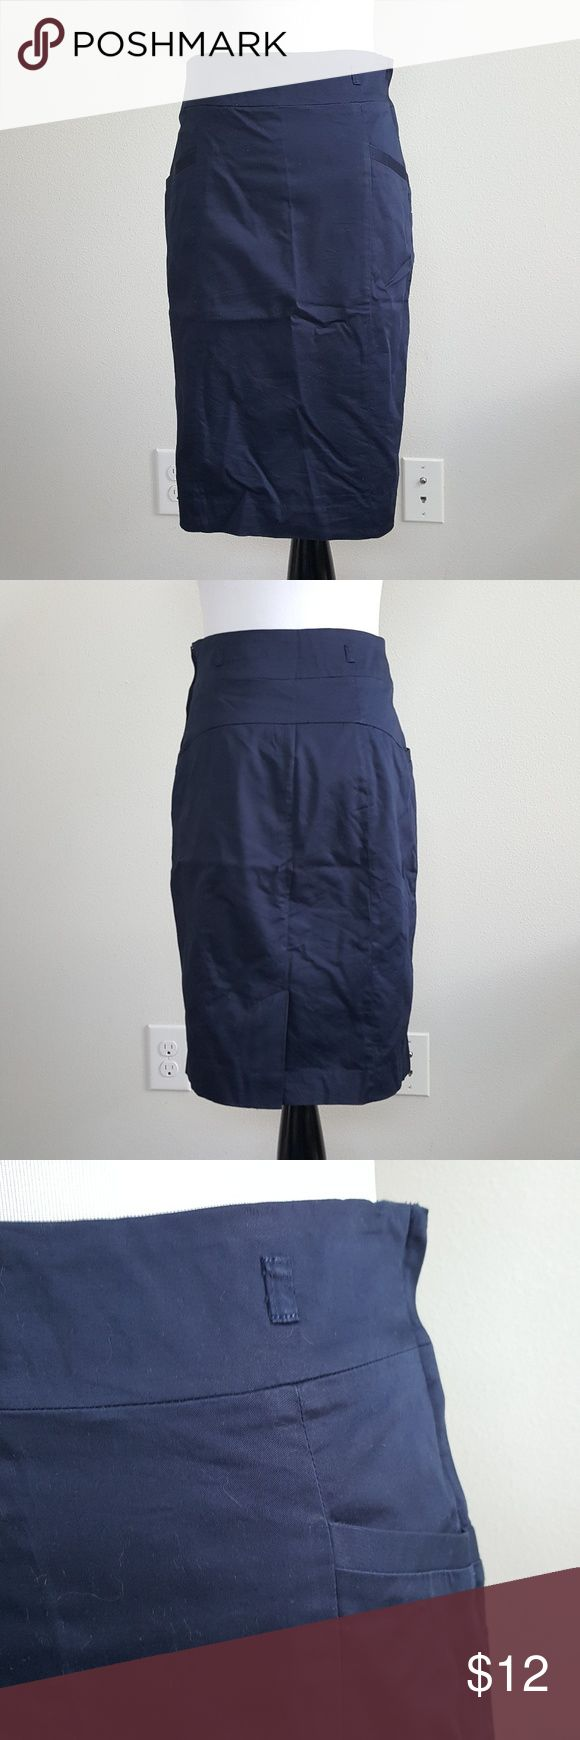 H&M Classic Navy Pencil Skirt Condition: EUC Brand: H&M Color: Navy Size: 6   Open to offers  Bundle to save  No trades  ⚡Bundle 2 or more items under $15 and I'll send you an offer with a 30% discount (at least!)⚡ H&M Skirts Pencil